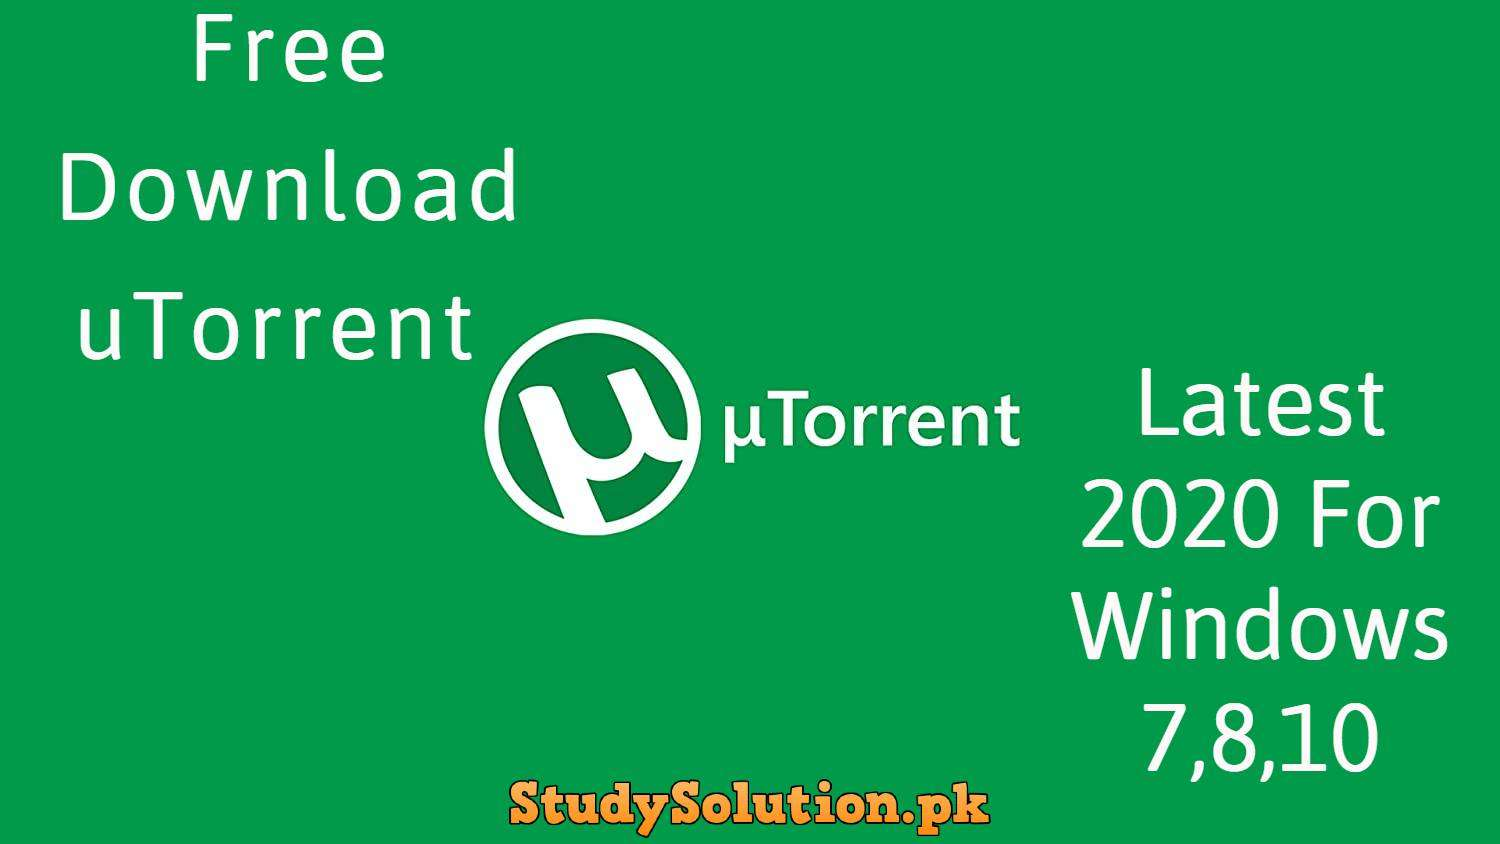 Download uTorrent Latest 2020 For Windows 7,8,10